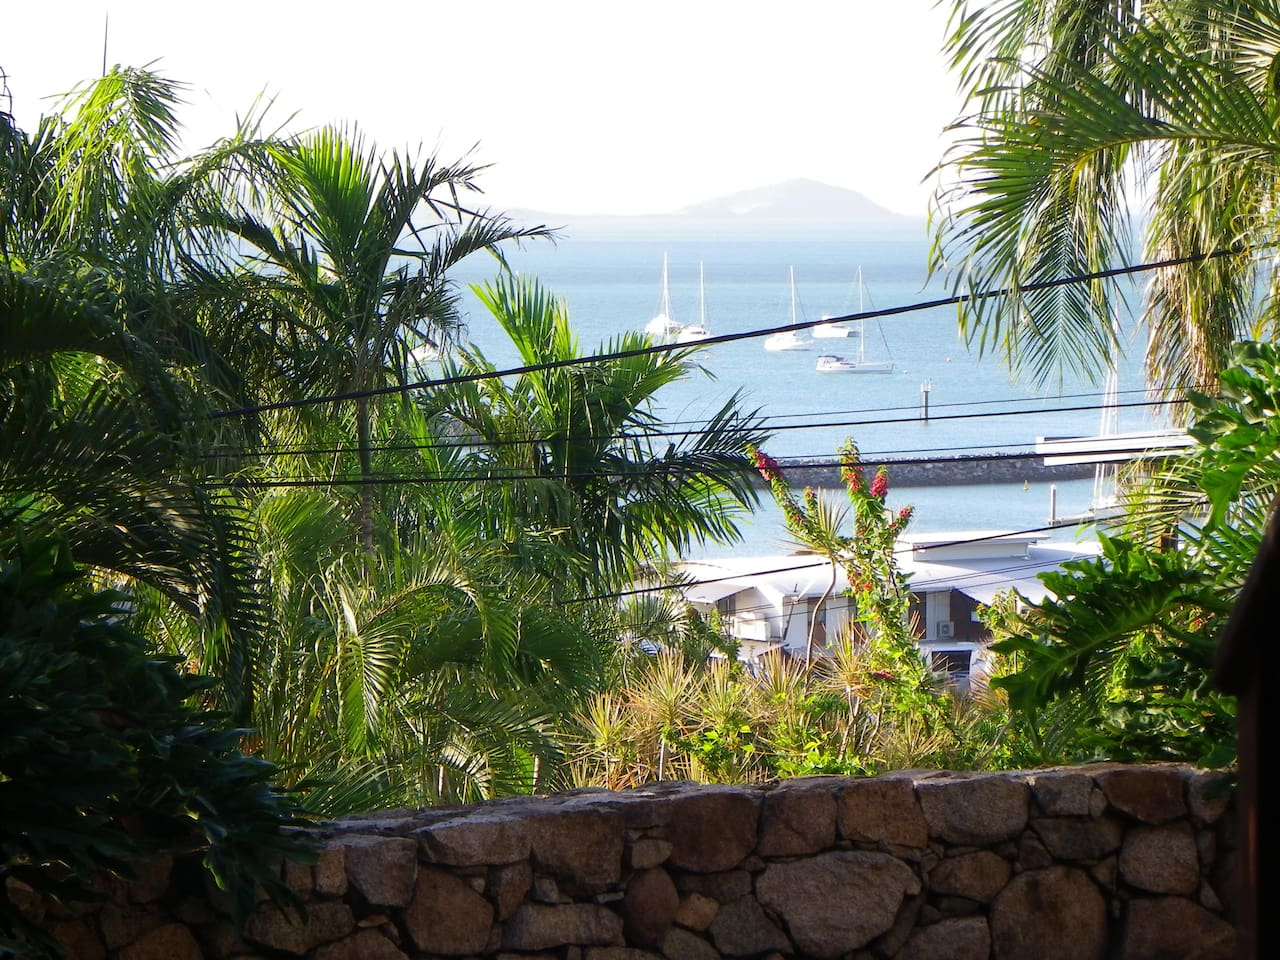 Wake up to this beautiful view!  Only a short walk to Abel Point Marina, the Main street or Port of Airlie, for all your day trips to the Whitsunday Islands, Great Barrier Reef and snorkeling adventures!